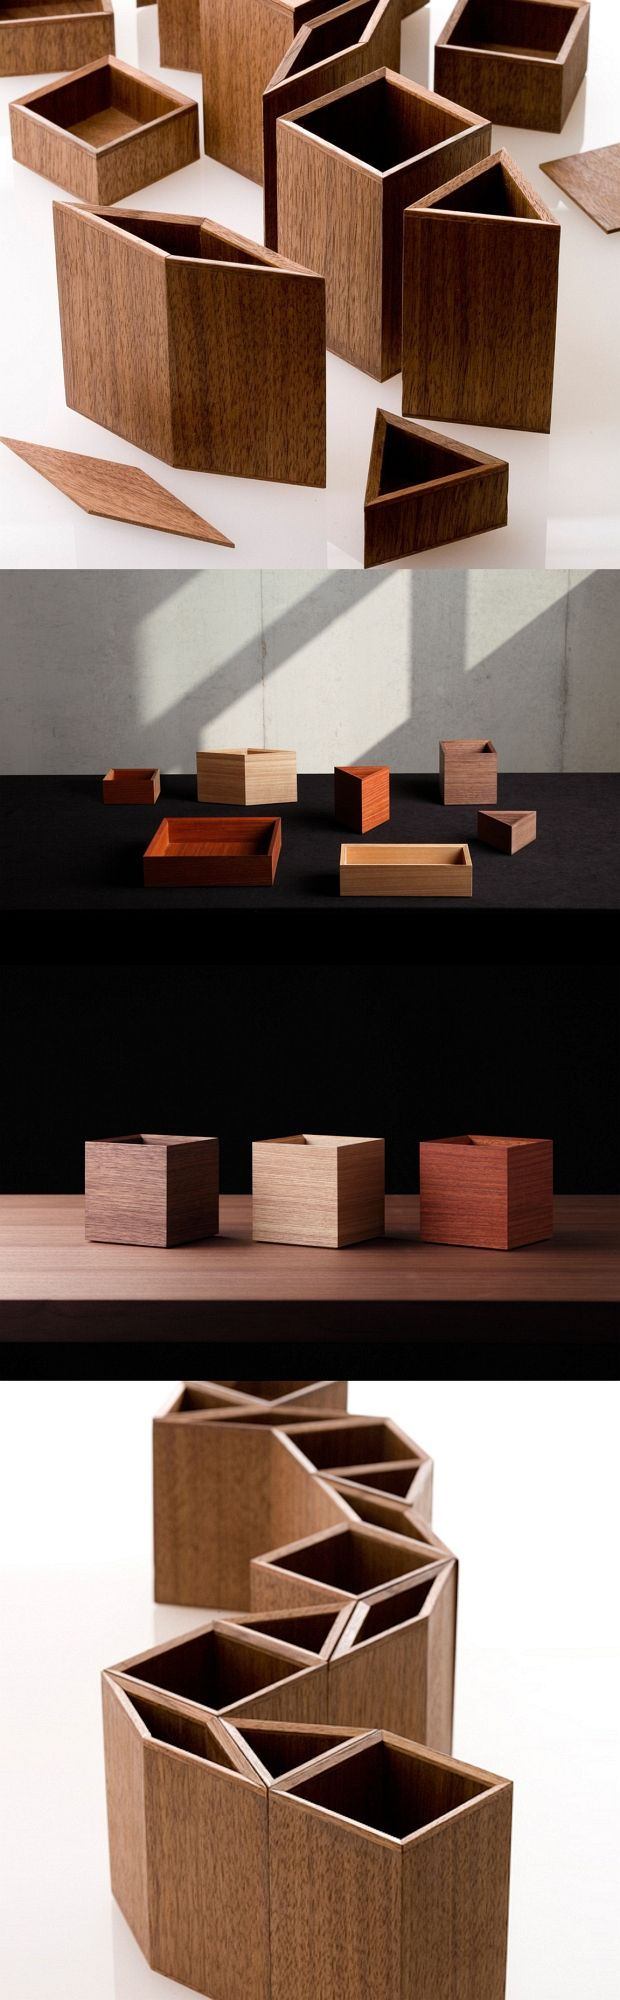 Beautifully crafted by artisans from Tokushima, these wooden stationary boxes magnetically connect. Designed in shapes of 30-degree increments – an equilateral triangle, a square and rhombus – the boxes freely come together to create geometric forms that act as pen stands, trays, or anything you need them to be.